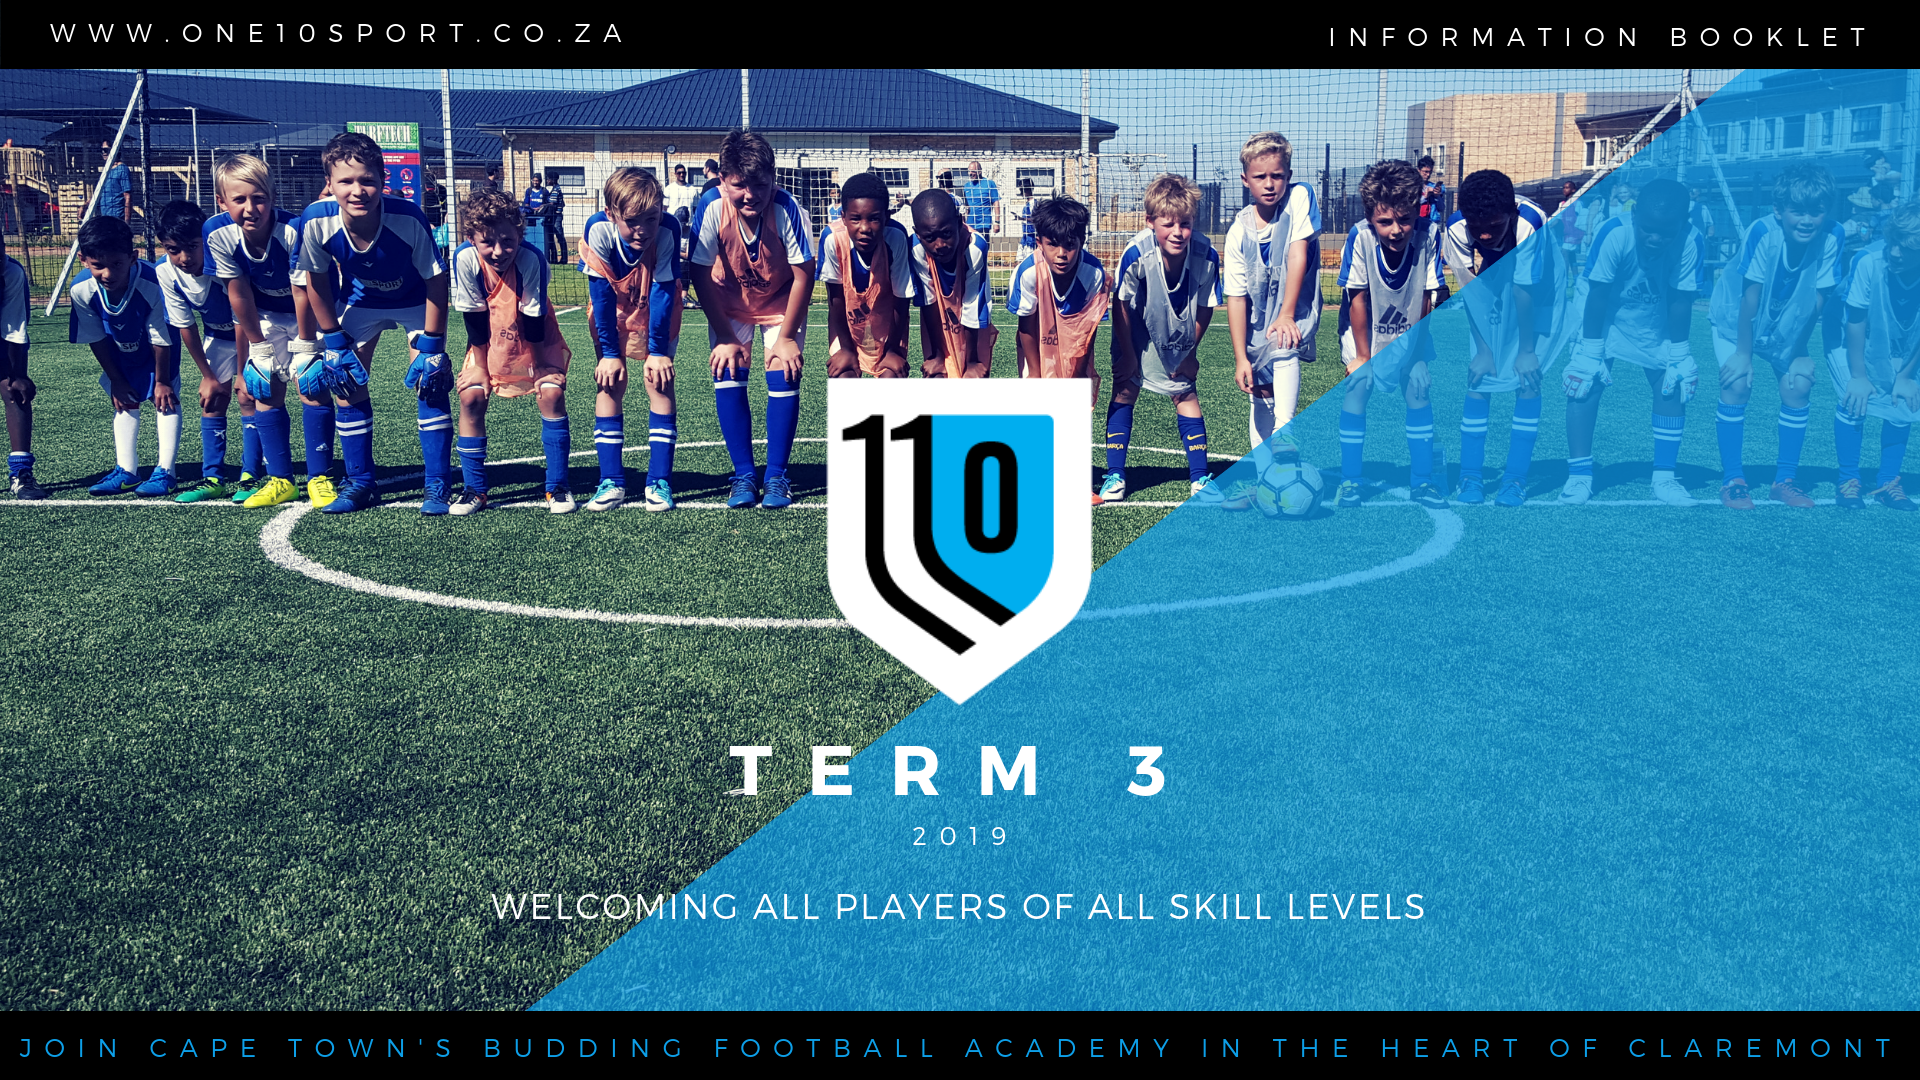 Football Academy in the Southern Suburbs, Cape Town